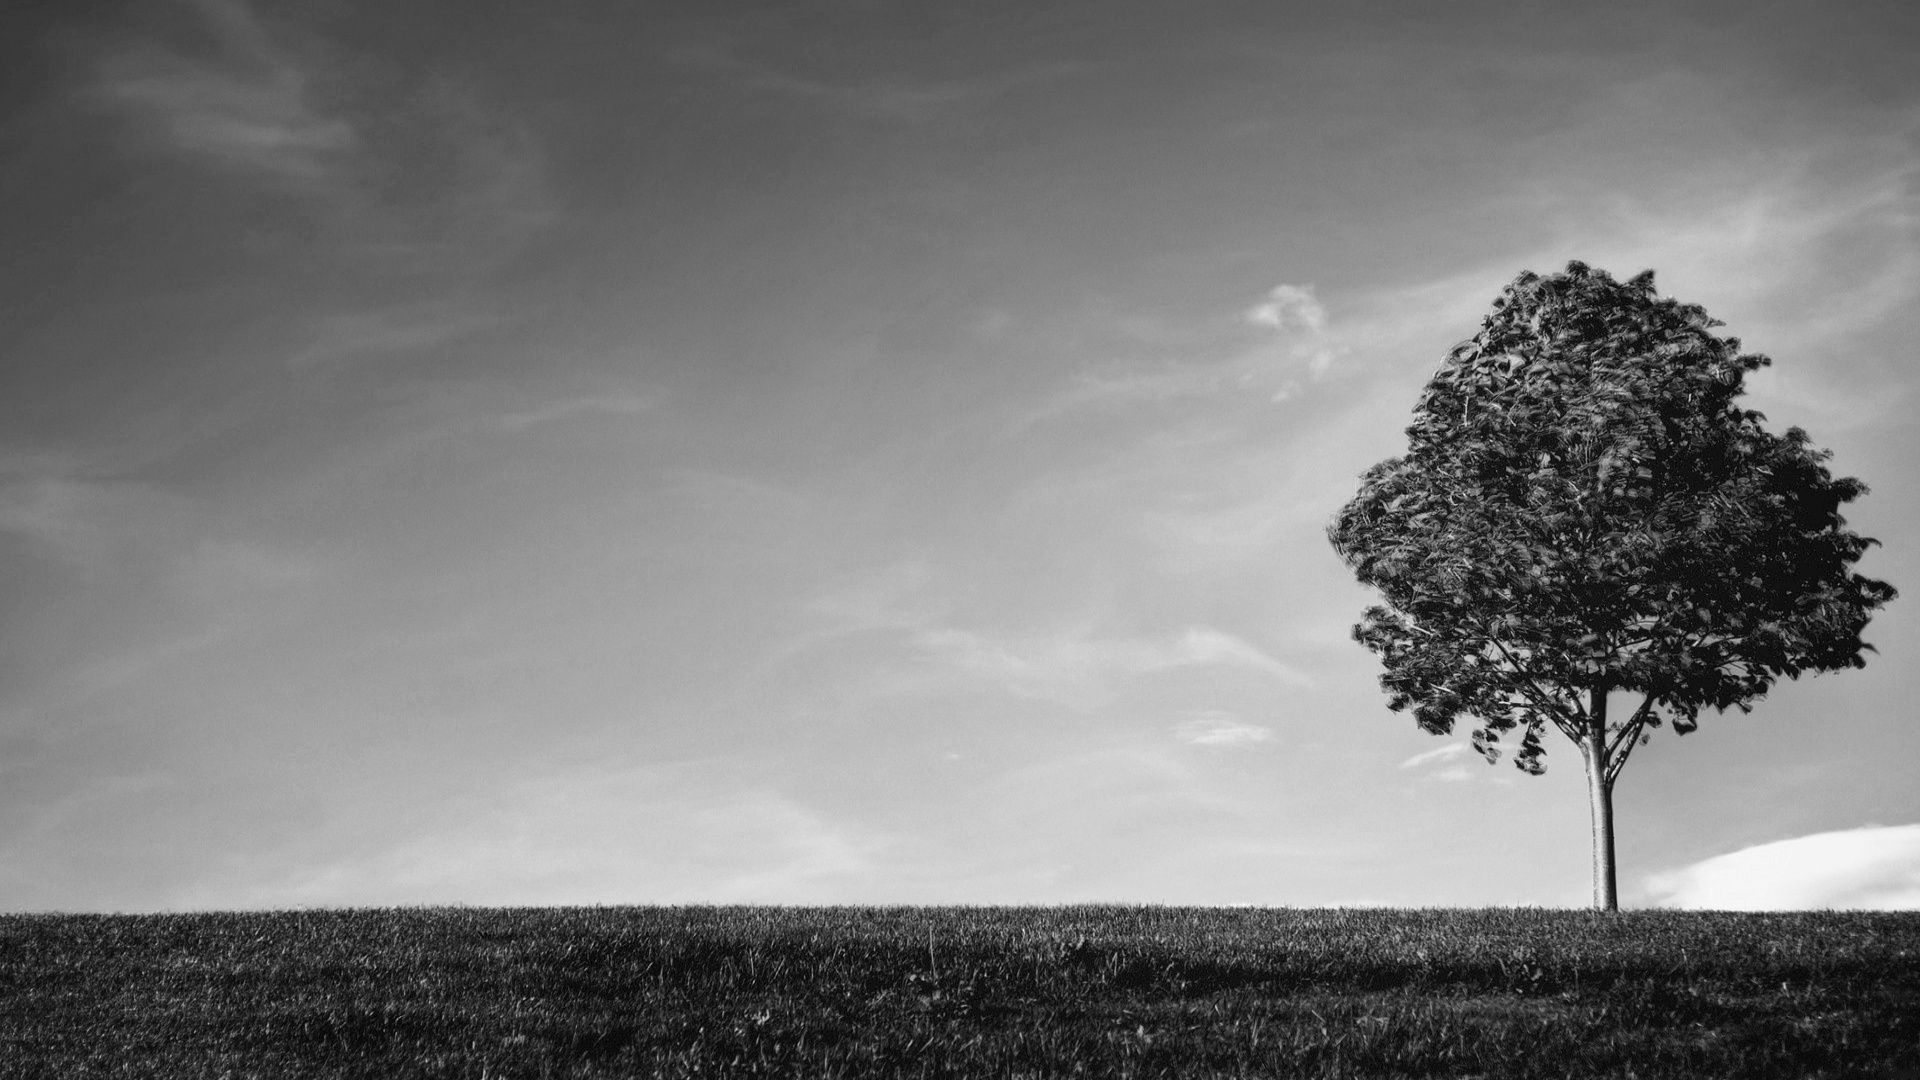 Tree Wallpaper Black And White Pixelstalknet